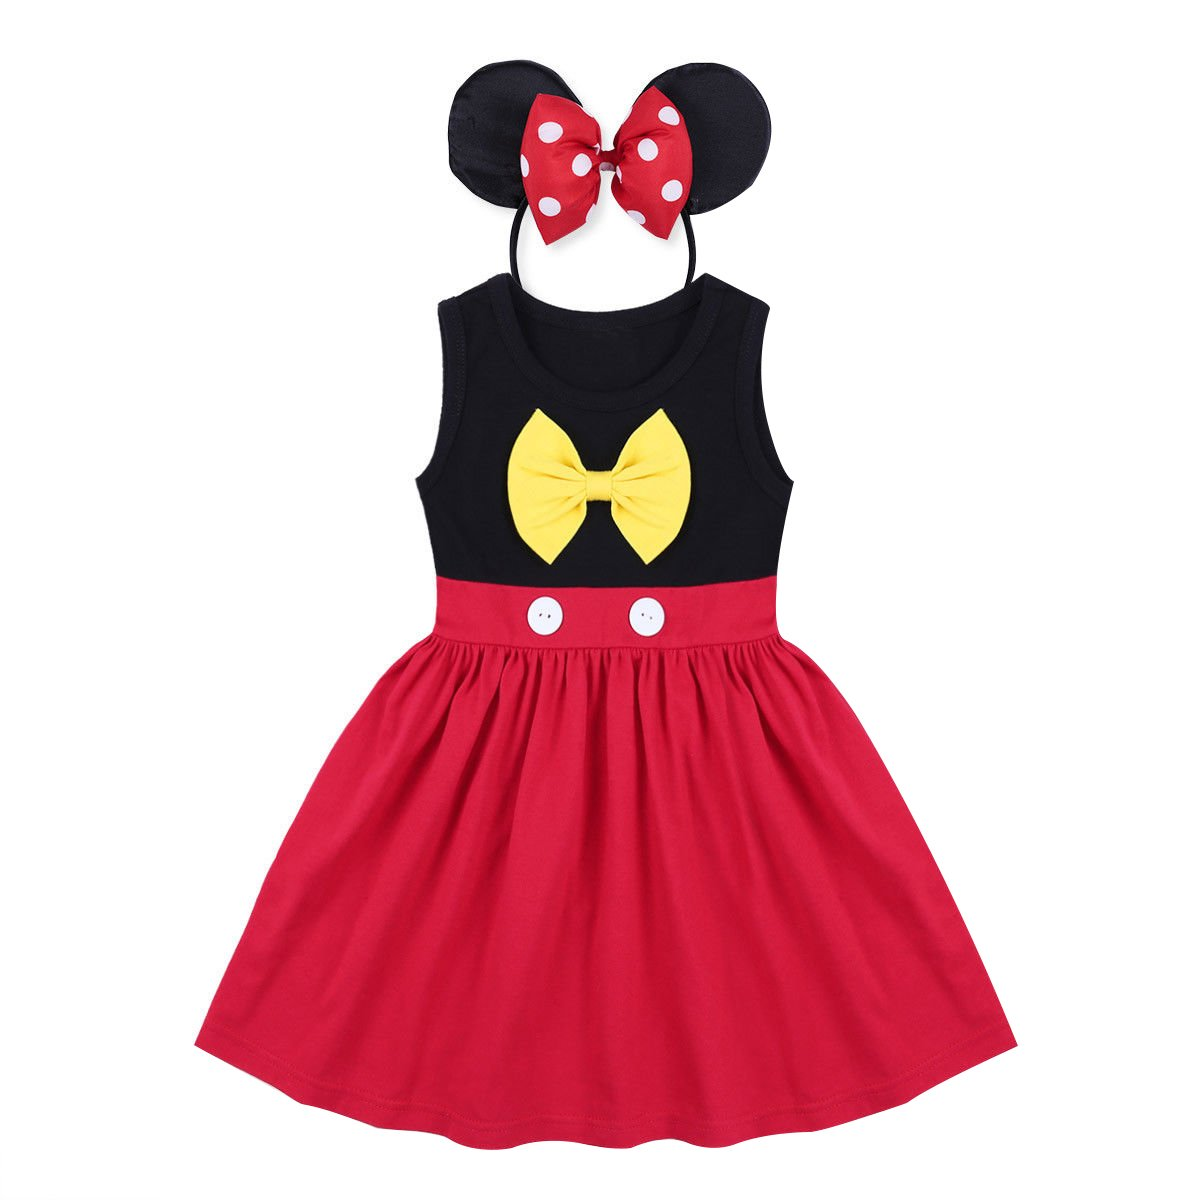 Baby Girl Princess Costume Summer Dresses Minnie Cartoon Cosplay Birthday Party Outfits T Shirt Skirt Clothes Set 18-24 Months by IBTOM CASTLE (Image #1)